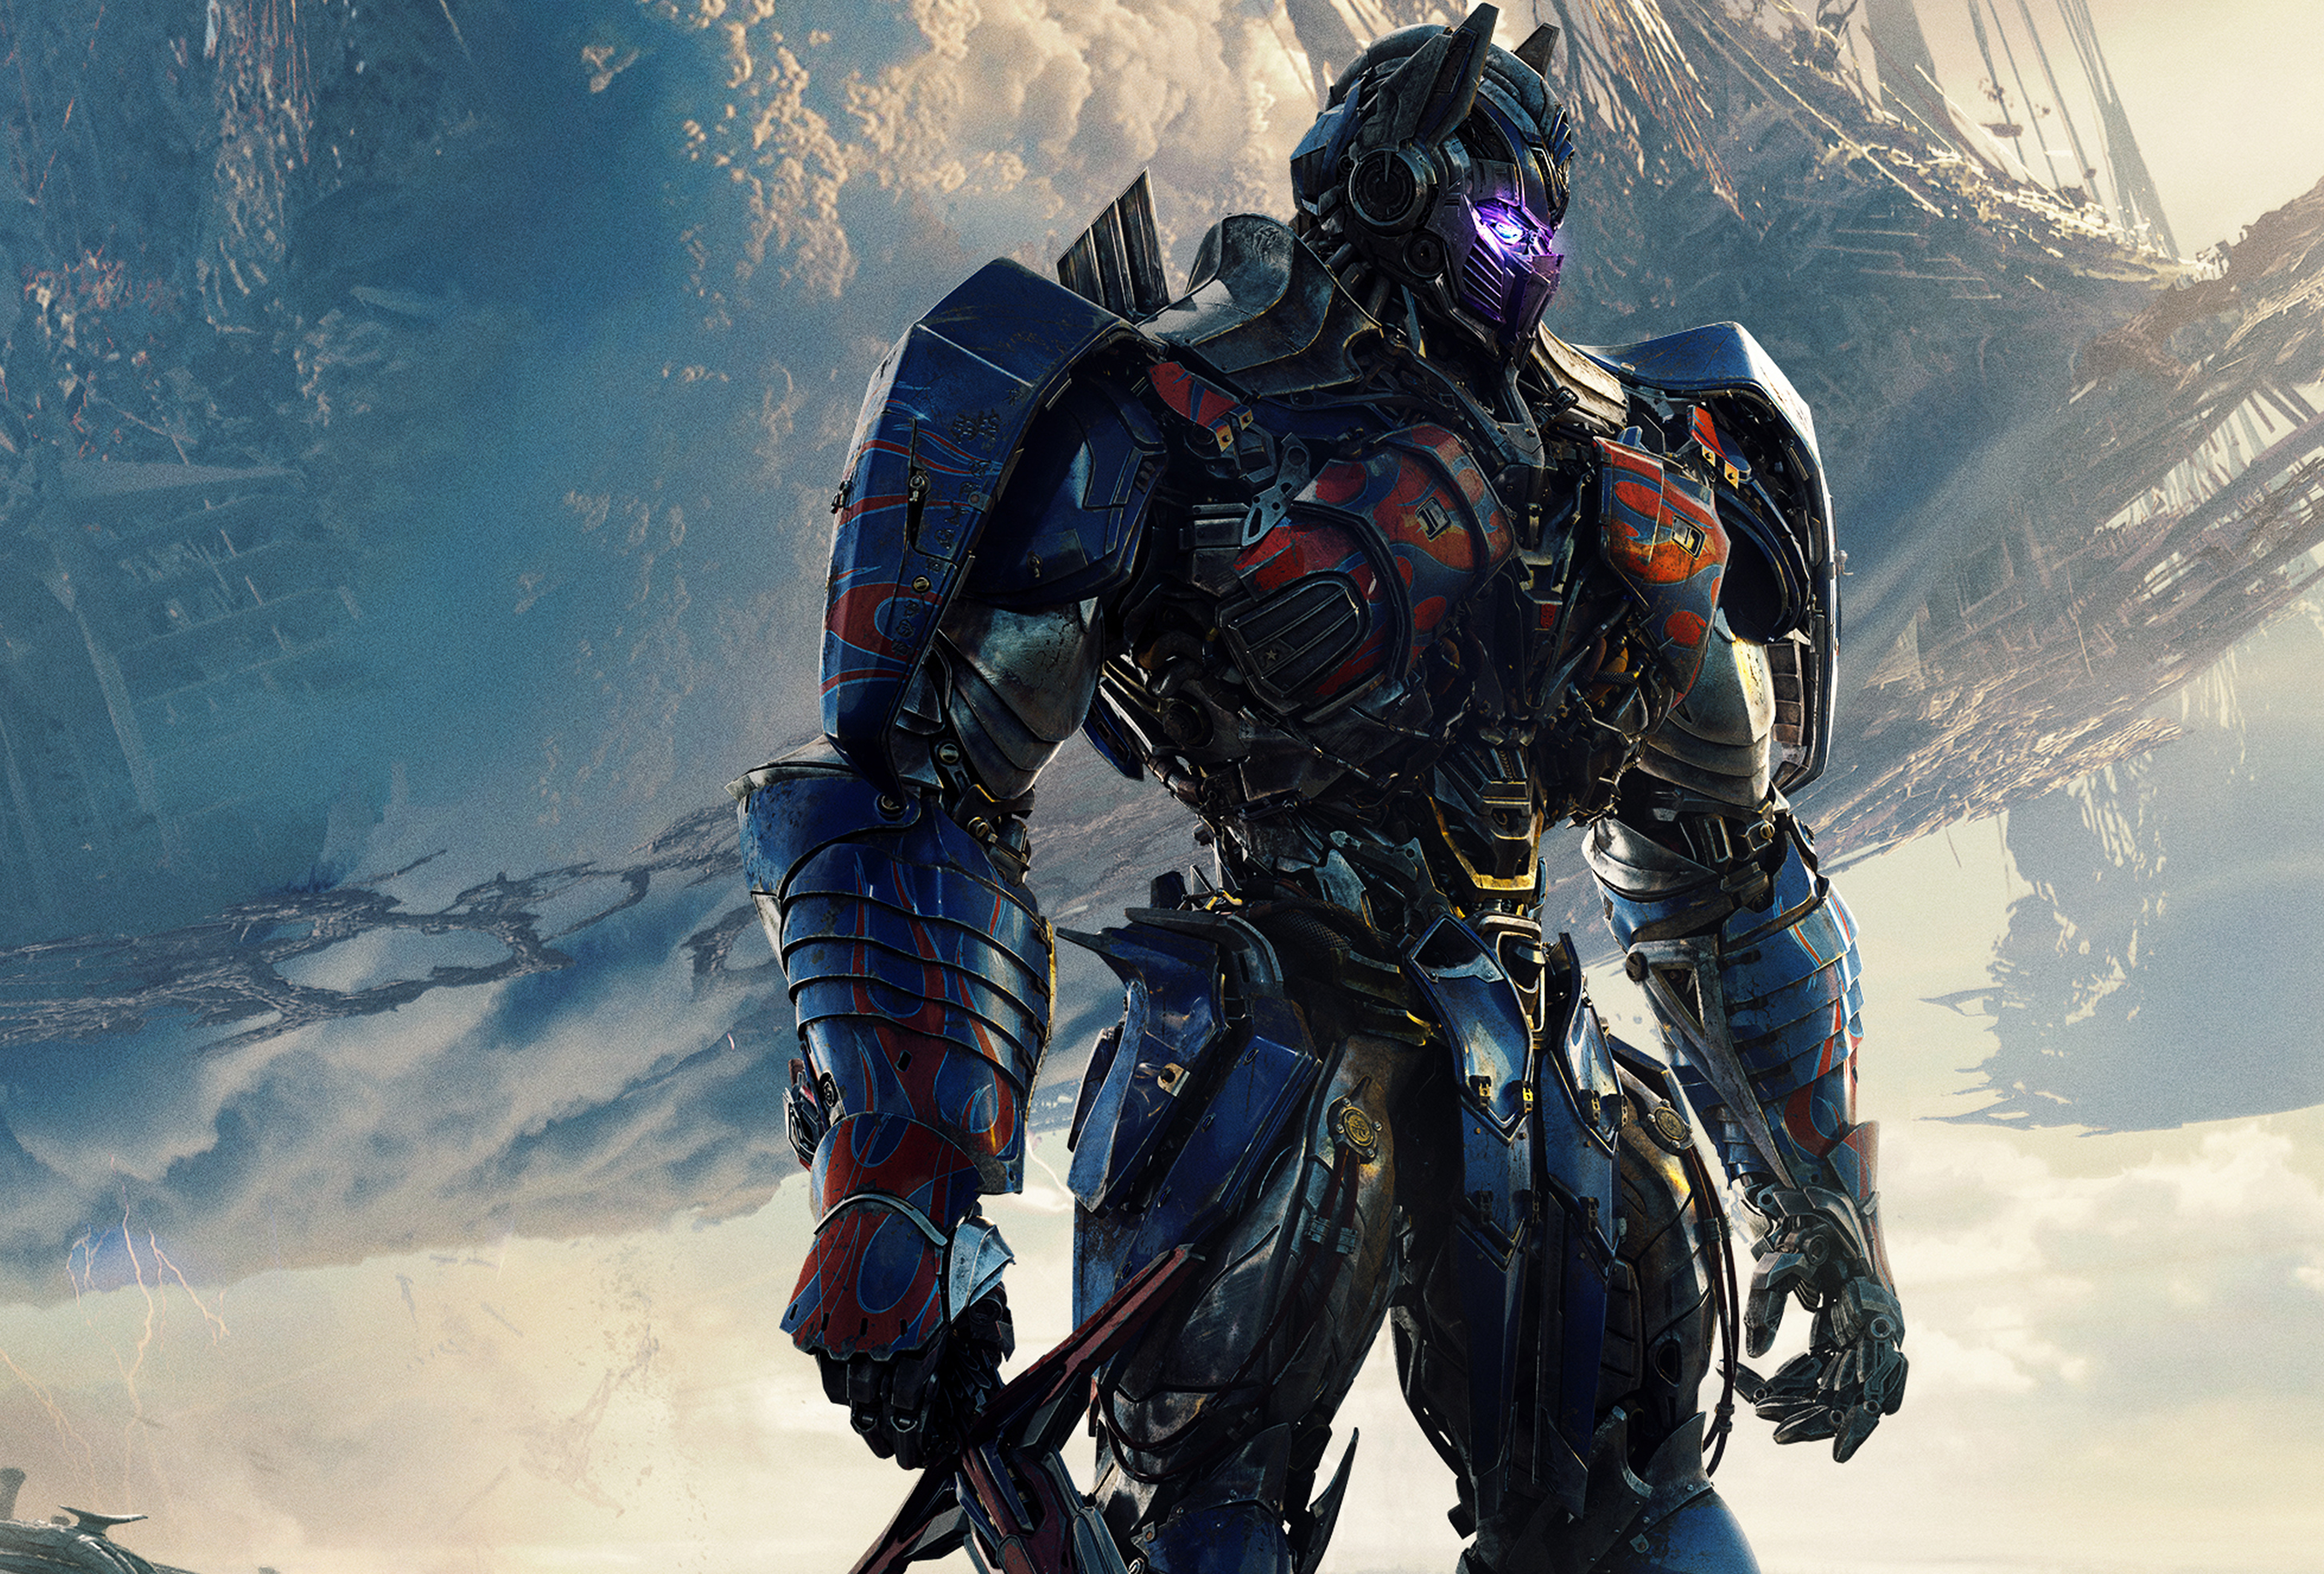 Optimus Prime Transformers The Last Knight 3840x2600